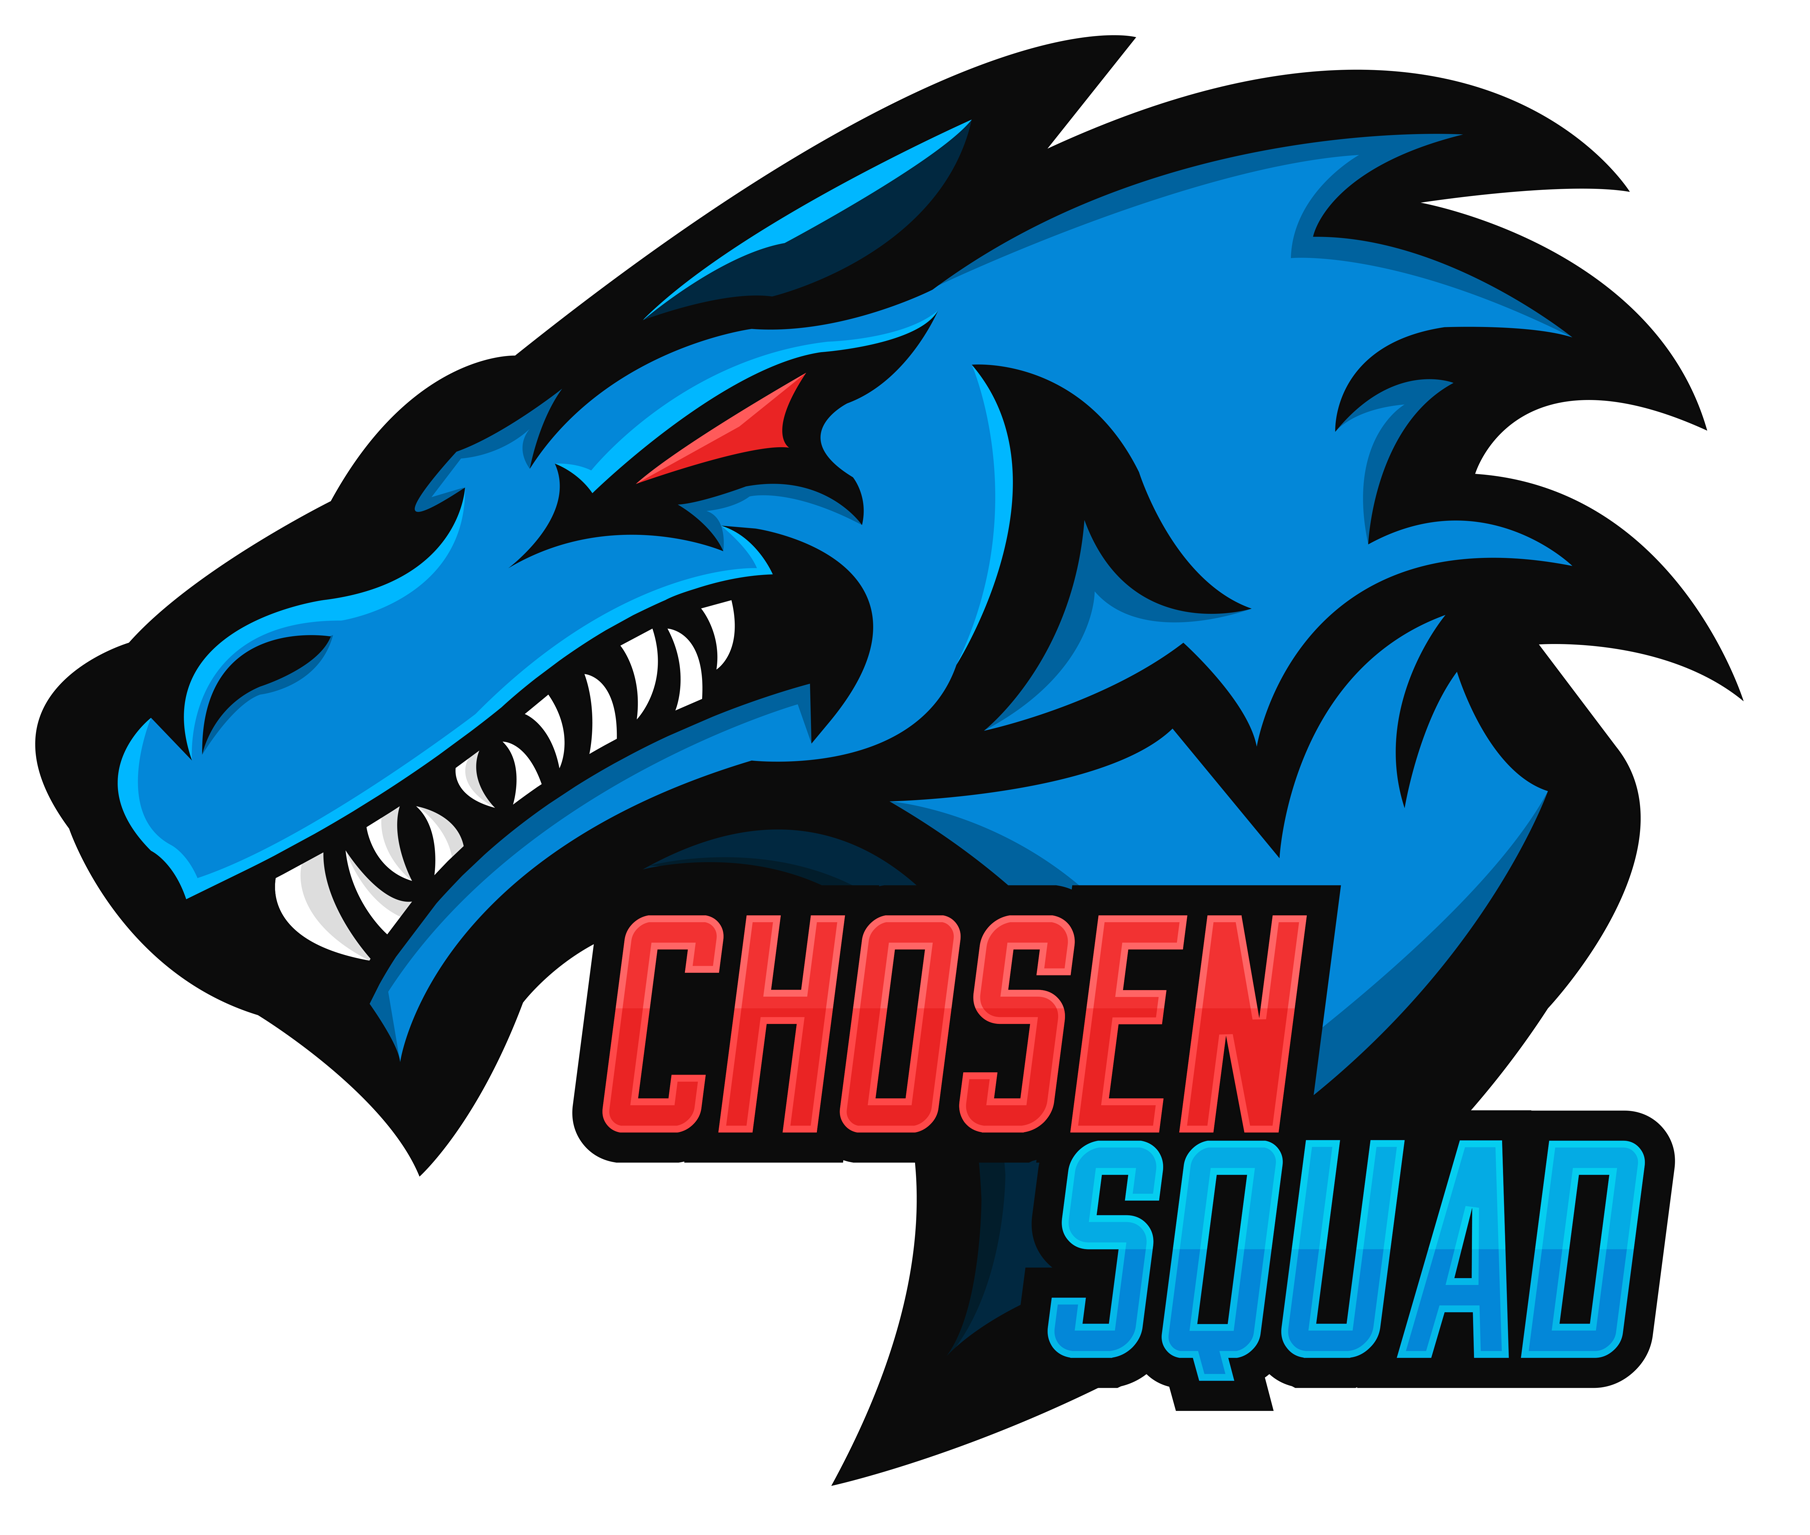 Squad logo clipart jpg transparent library Chosen Squad Logo Clipart - Full Size Clipart (#2387519 ... jpg transparent library